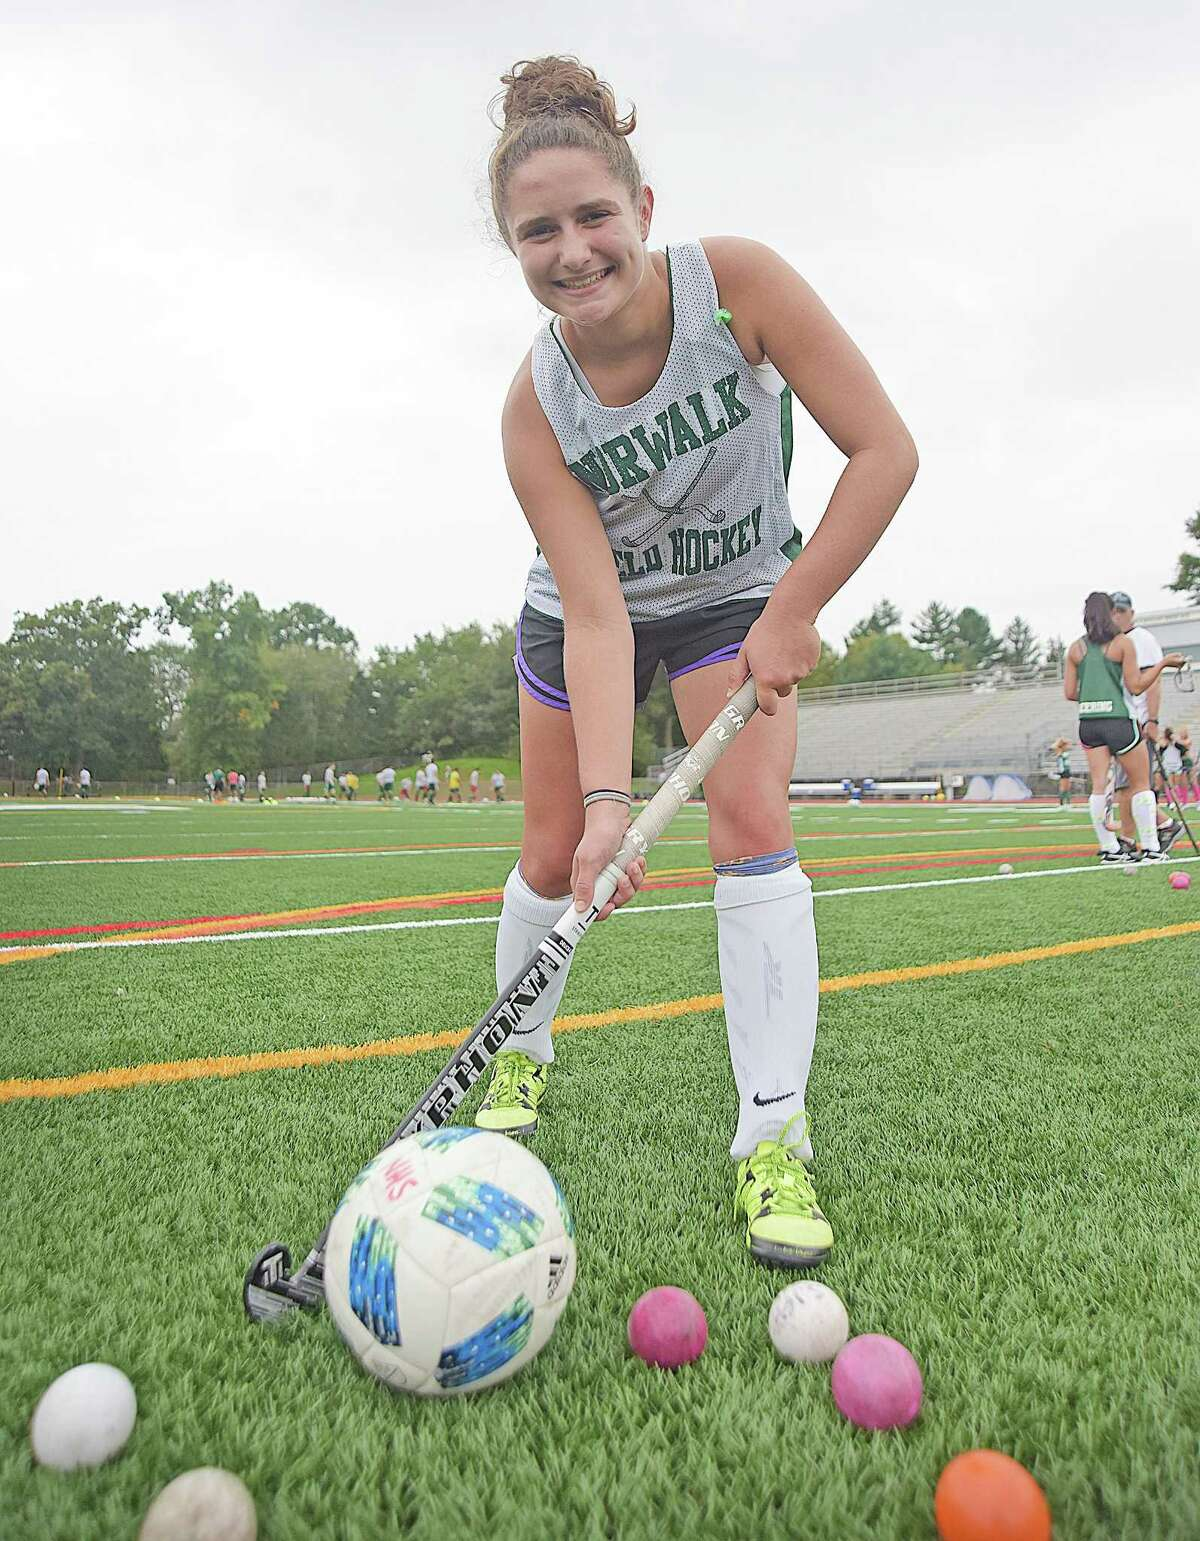 Norwalk High senior Julia Sferlazza made the rare switch from soccer to field hockey without ever having played the latter sport until this season. Now she's a starter on one of the most successful teams in the FCIAC.